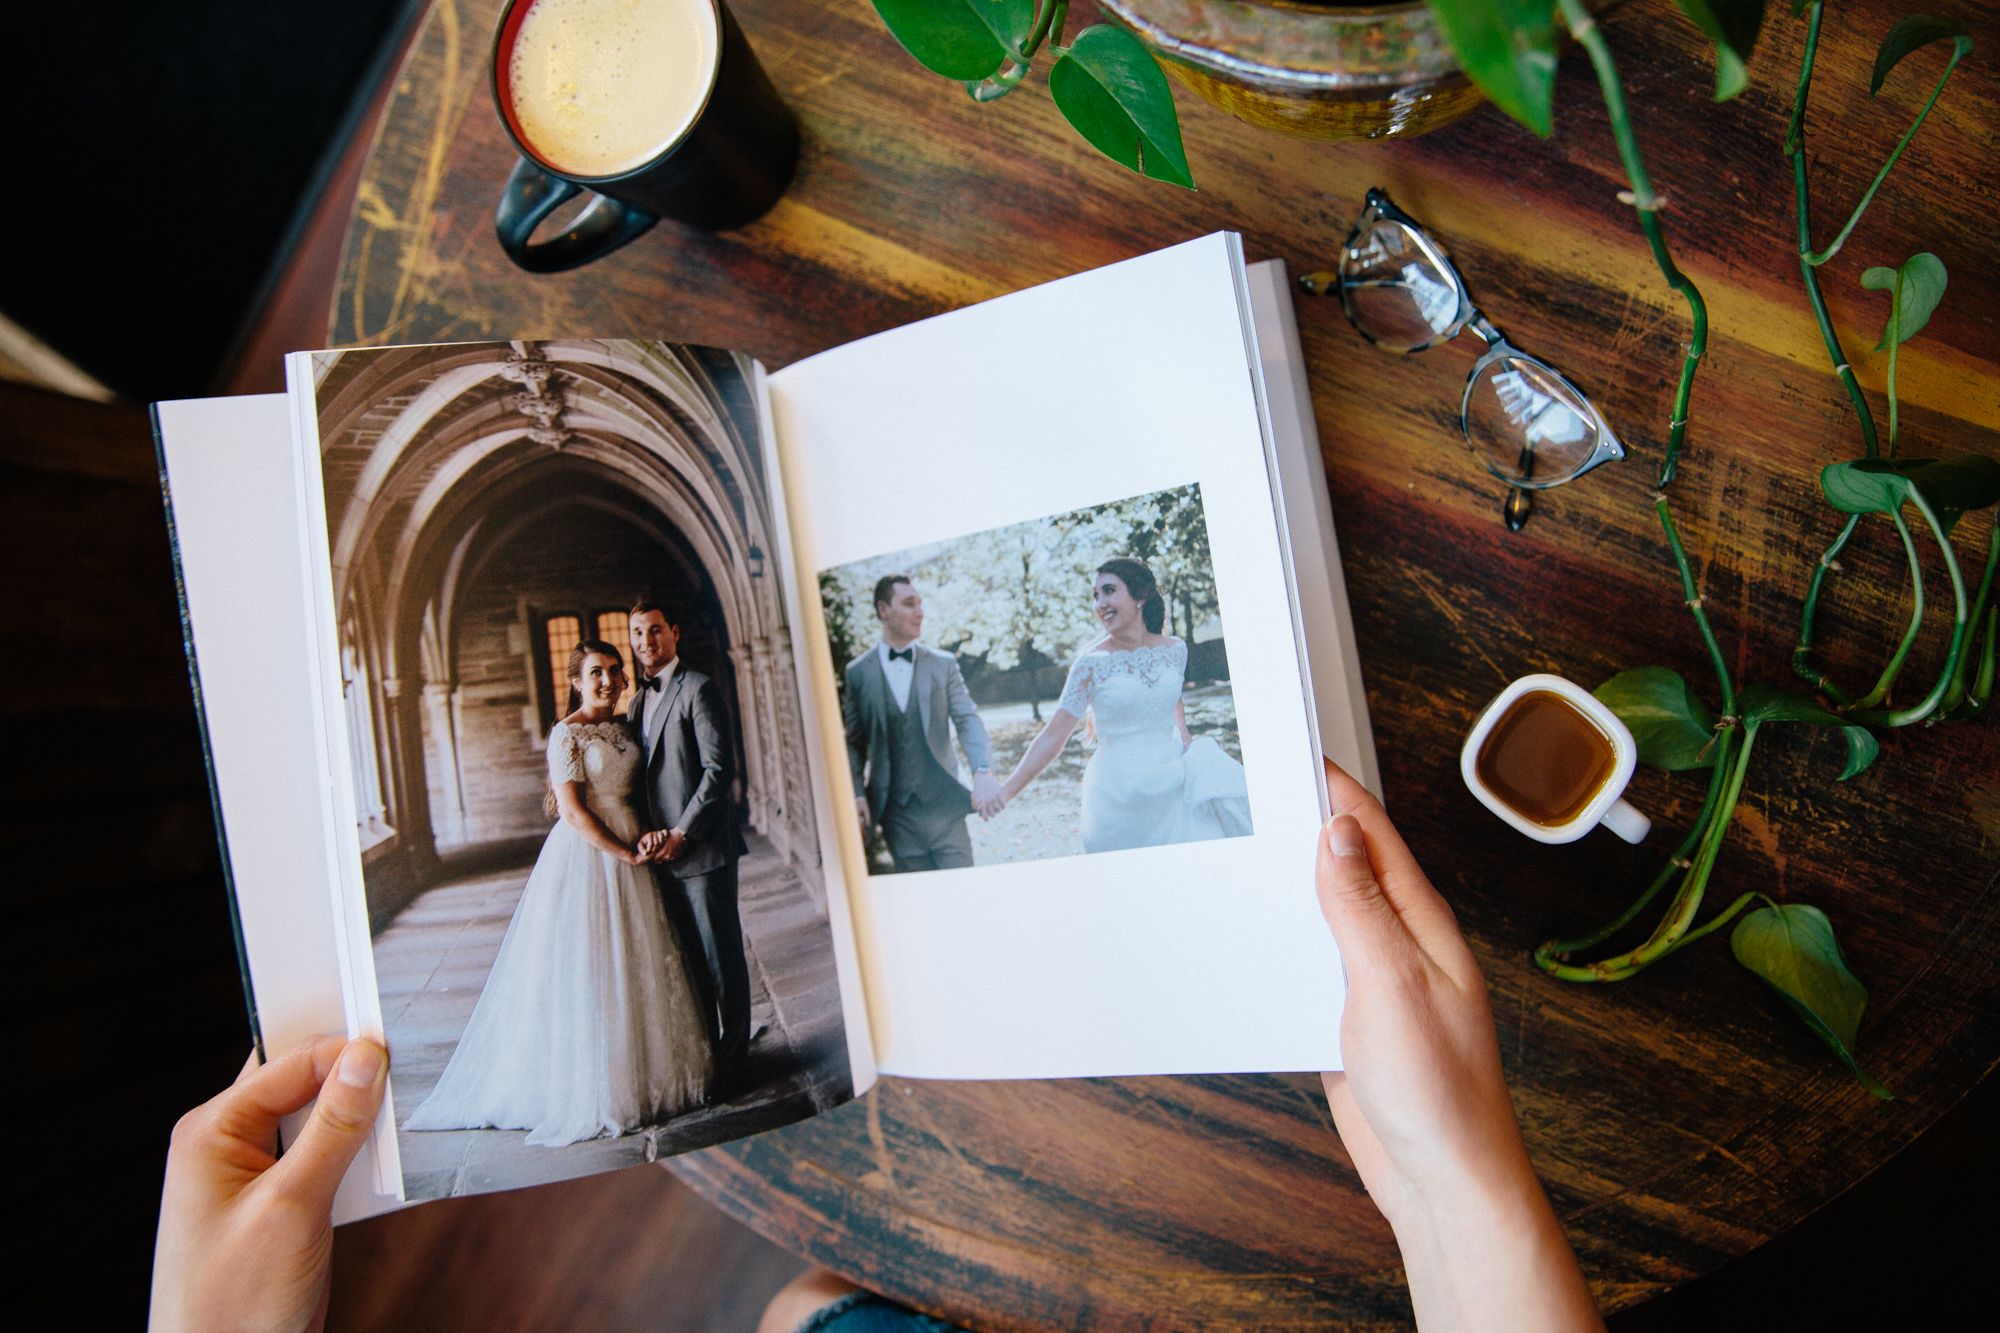 Interested in a beautiful, keepsake wedding album? - Inquire above!